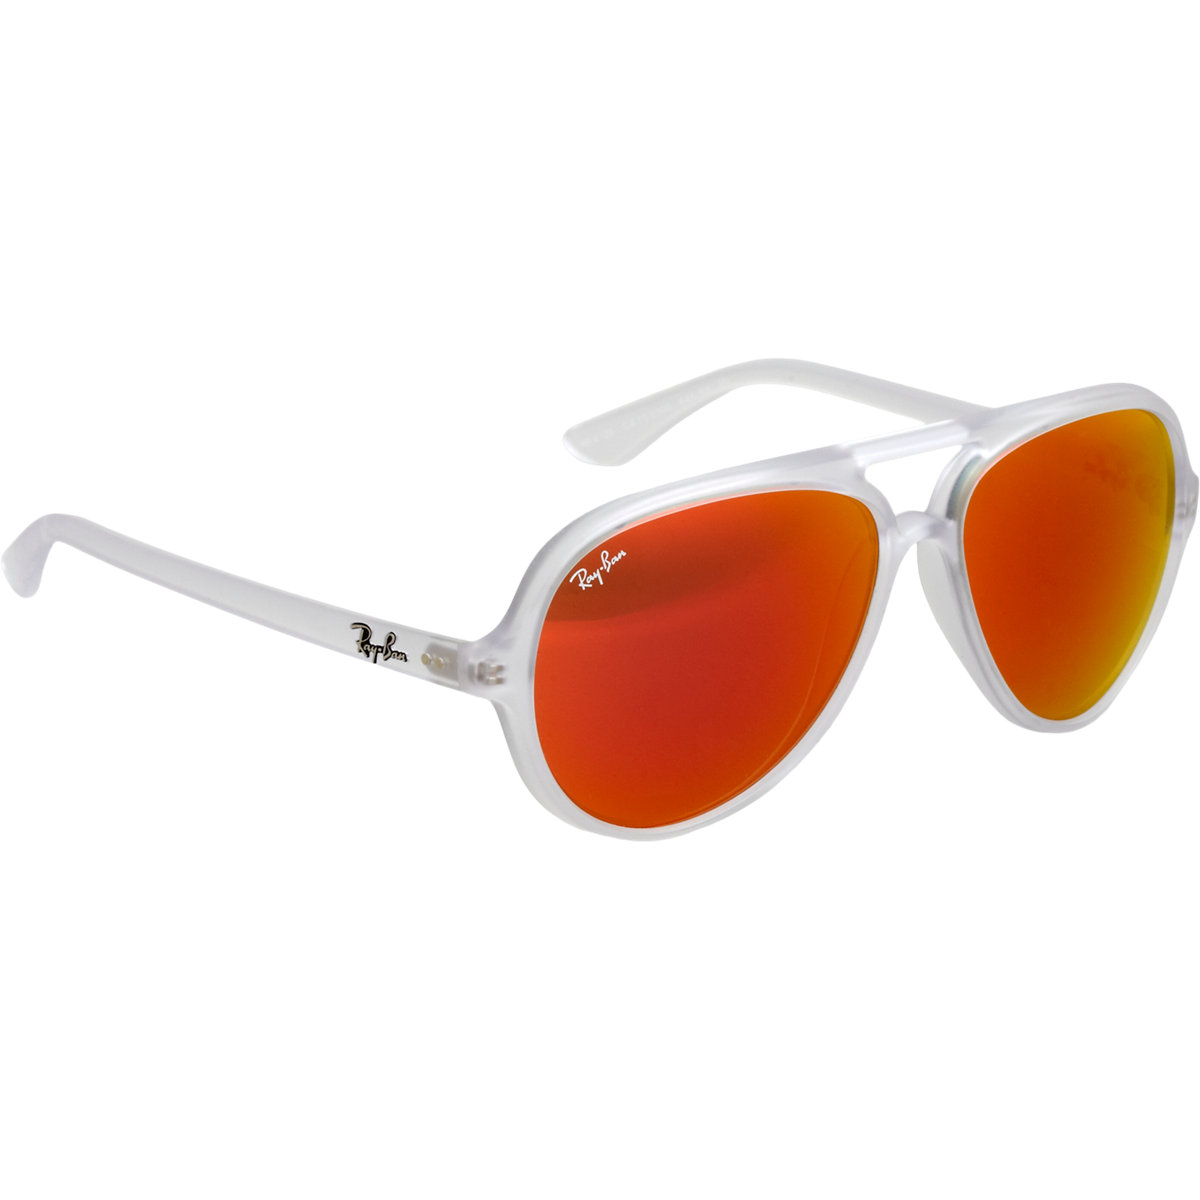 Lyst ray ban transparent aviator frame mirror lens for Mirror sunglasses